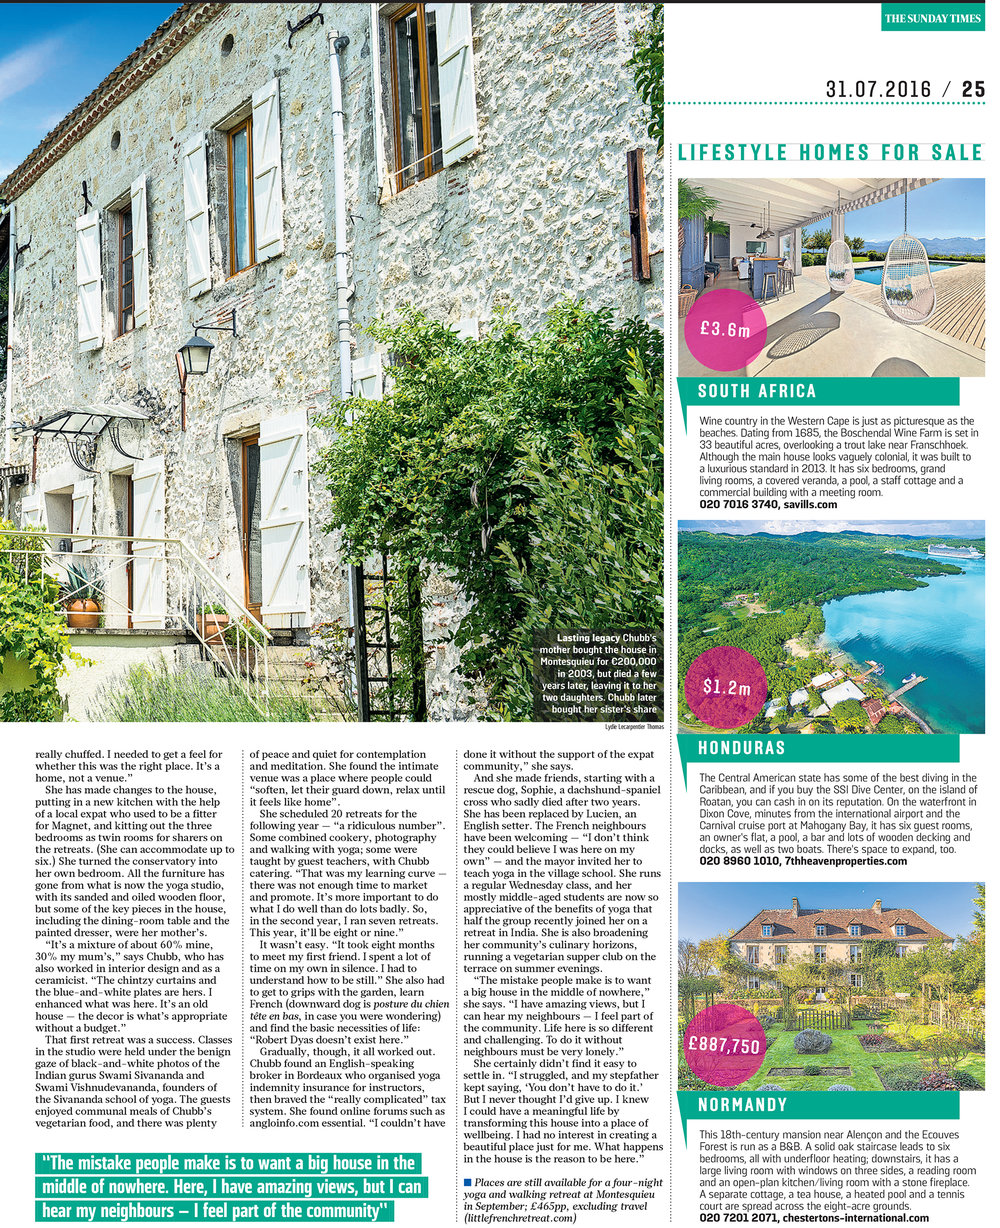 Little French Retreat; Sunday Times Review